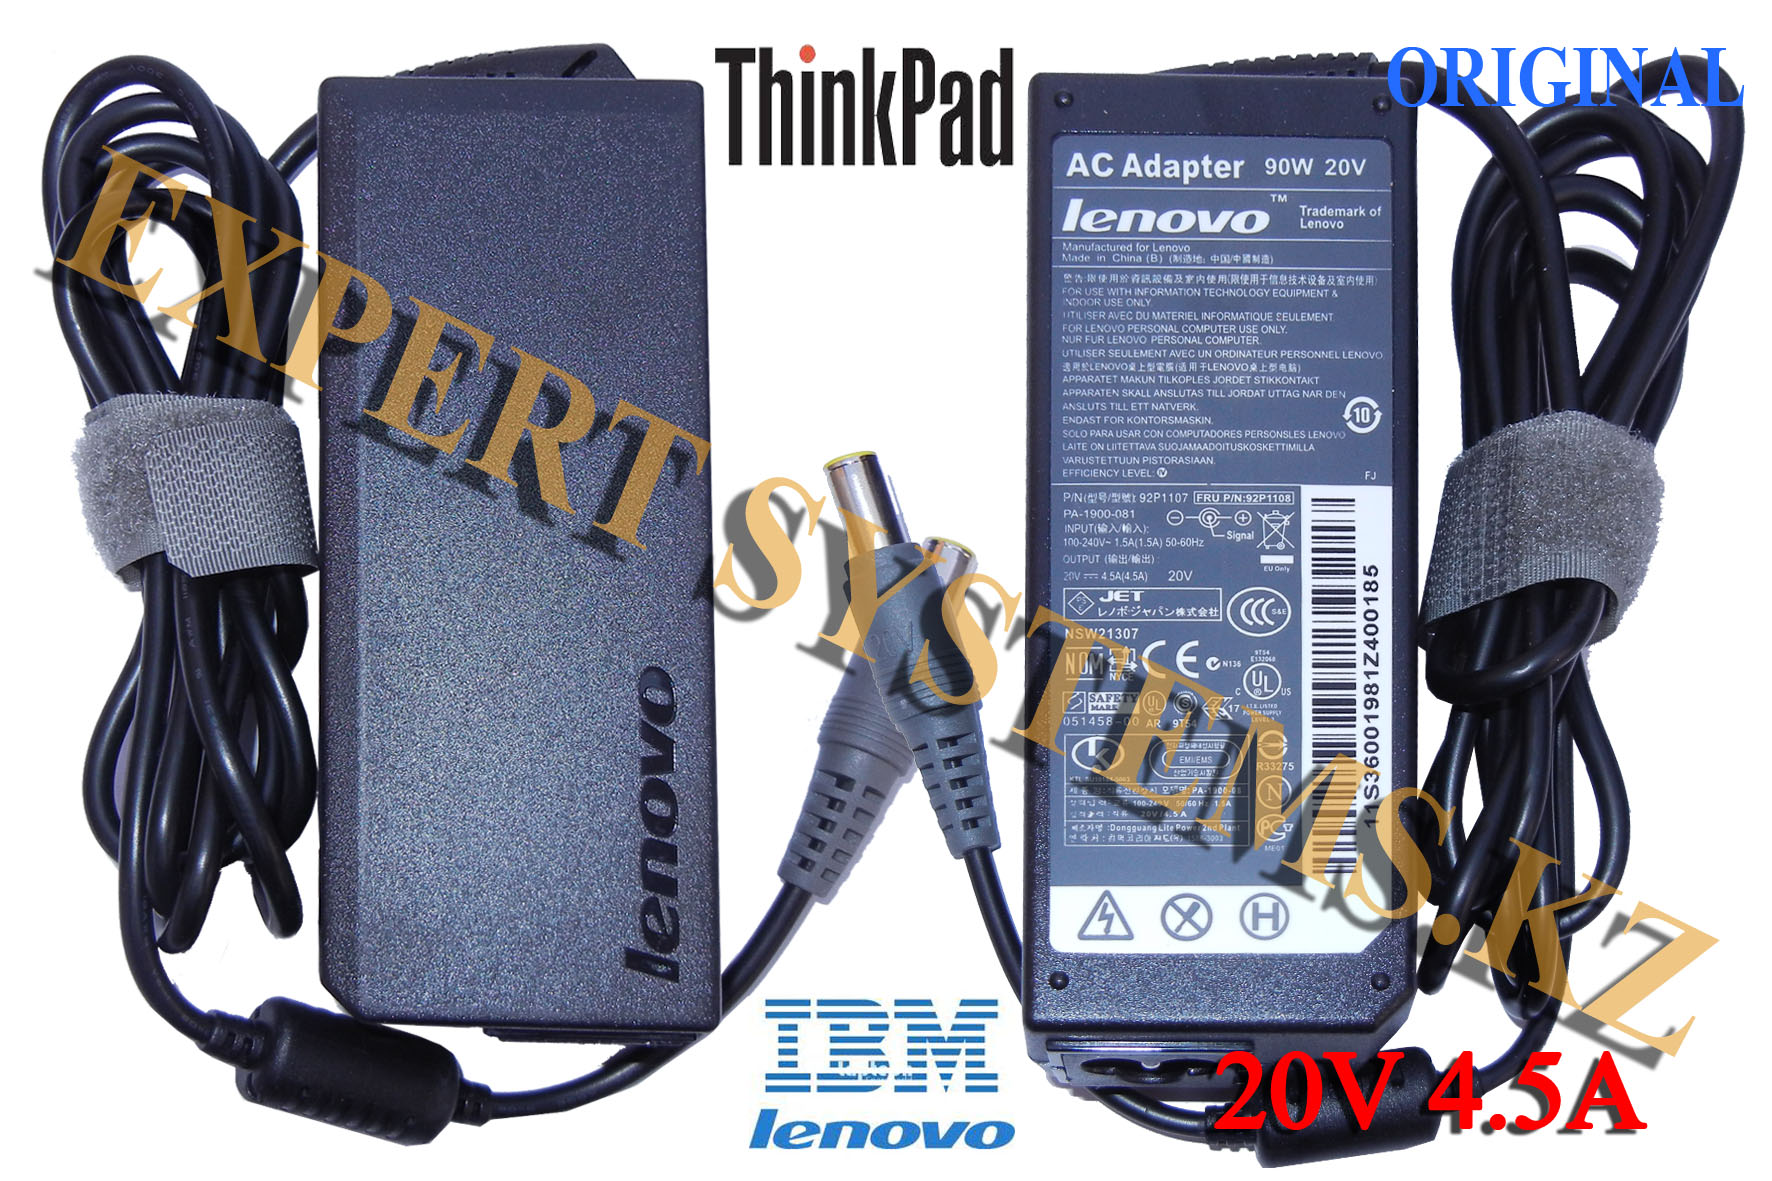 THINKPAD ADAPTER